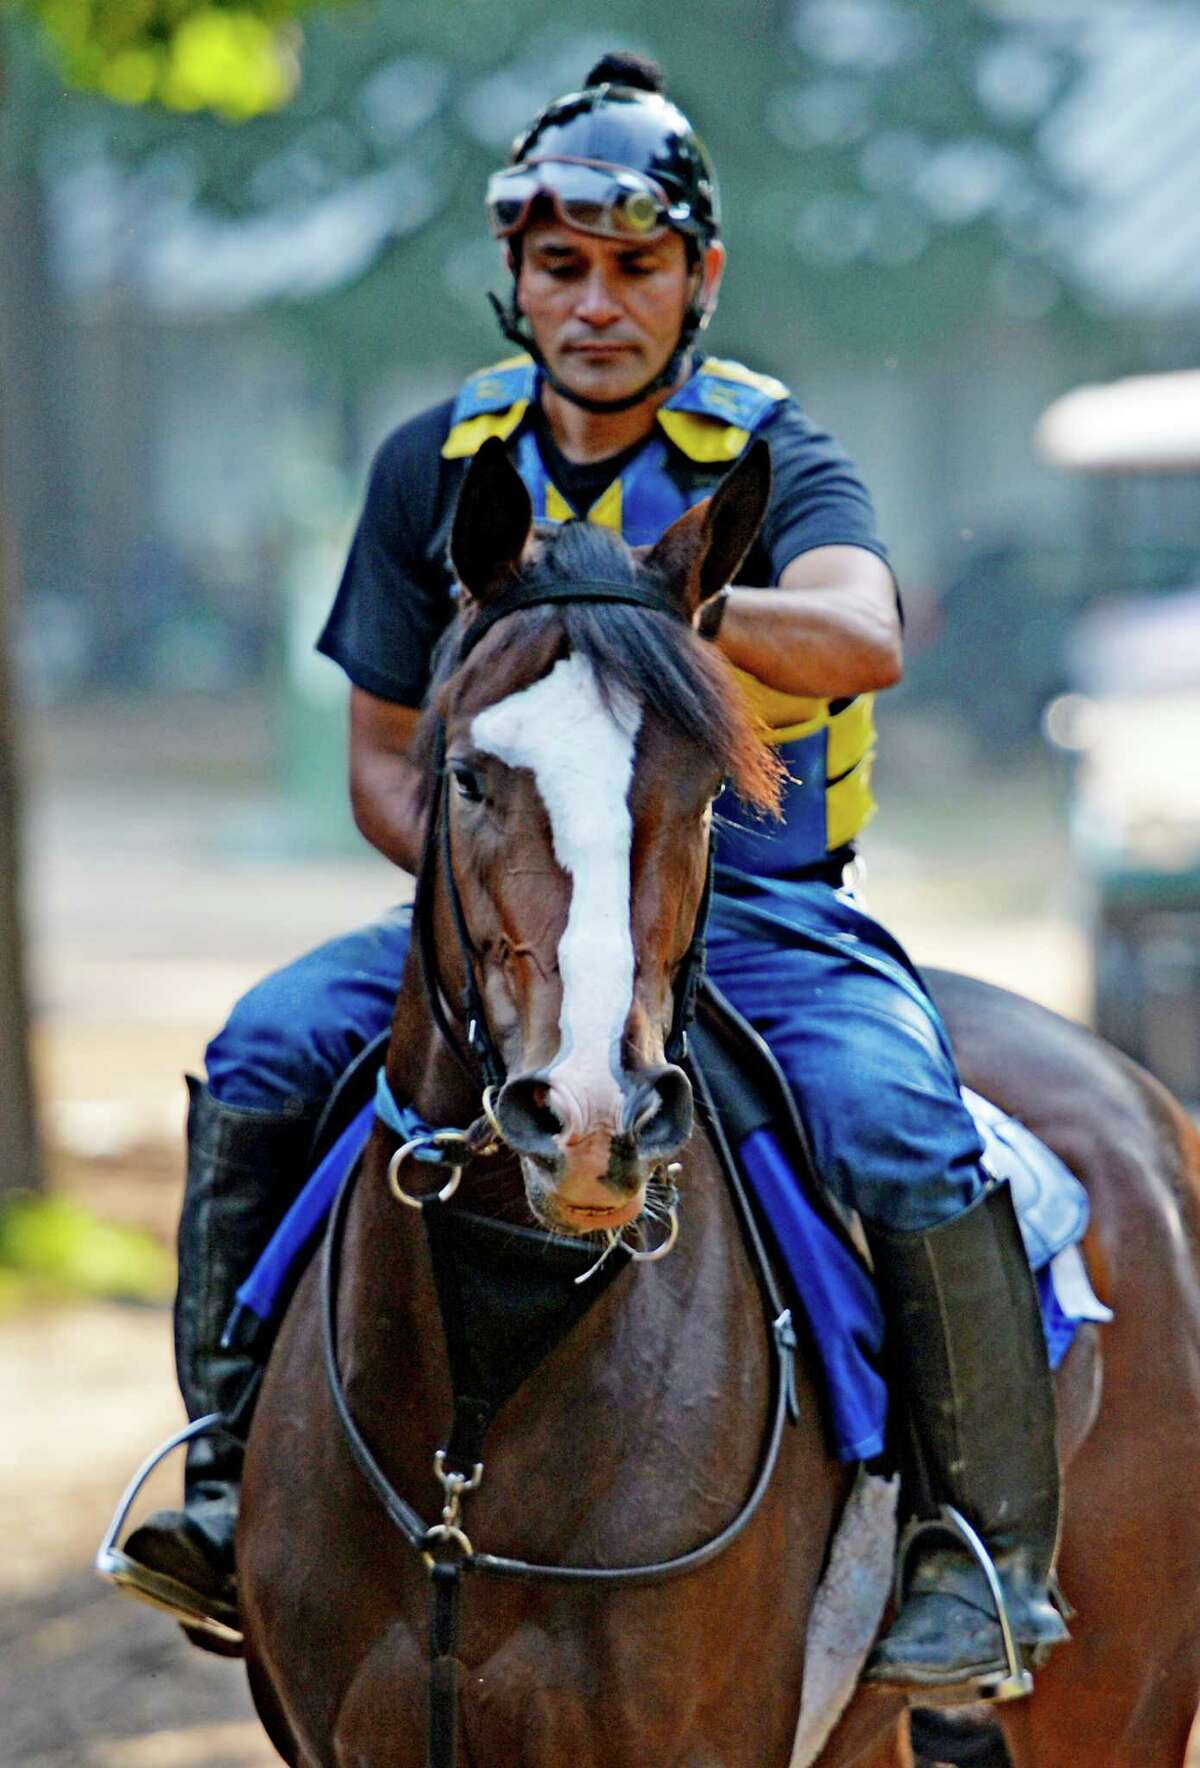 Trainer Rudy Rodriguez sits atop Flower Kisser, a two year old filly by Courageous Cat out of Bridesmade Monday morning Aug. 17, 2015 at the Saratoga Race Course in Saratoga Springs, N.Y. Flower Kisser will have her next start late in the Saratoga Race Meeting. (Skip Dickstein/Times Union)